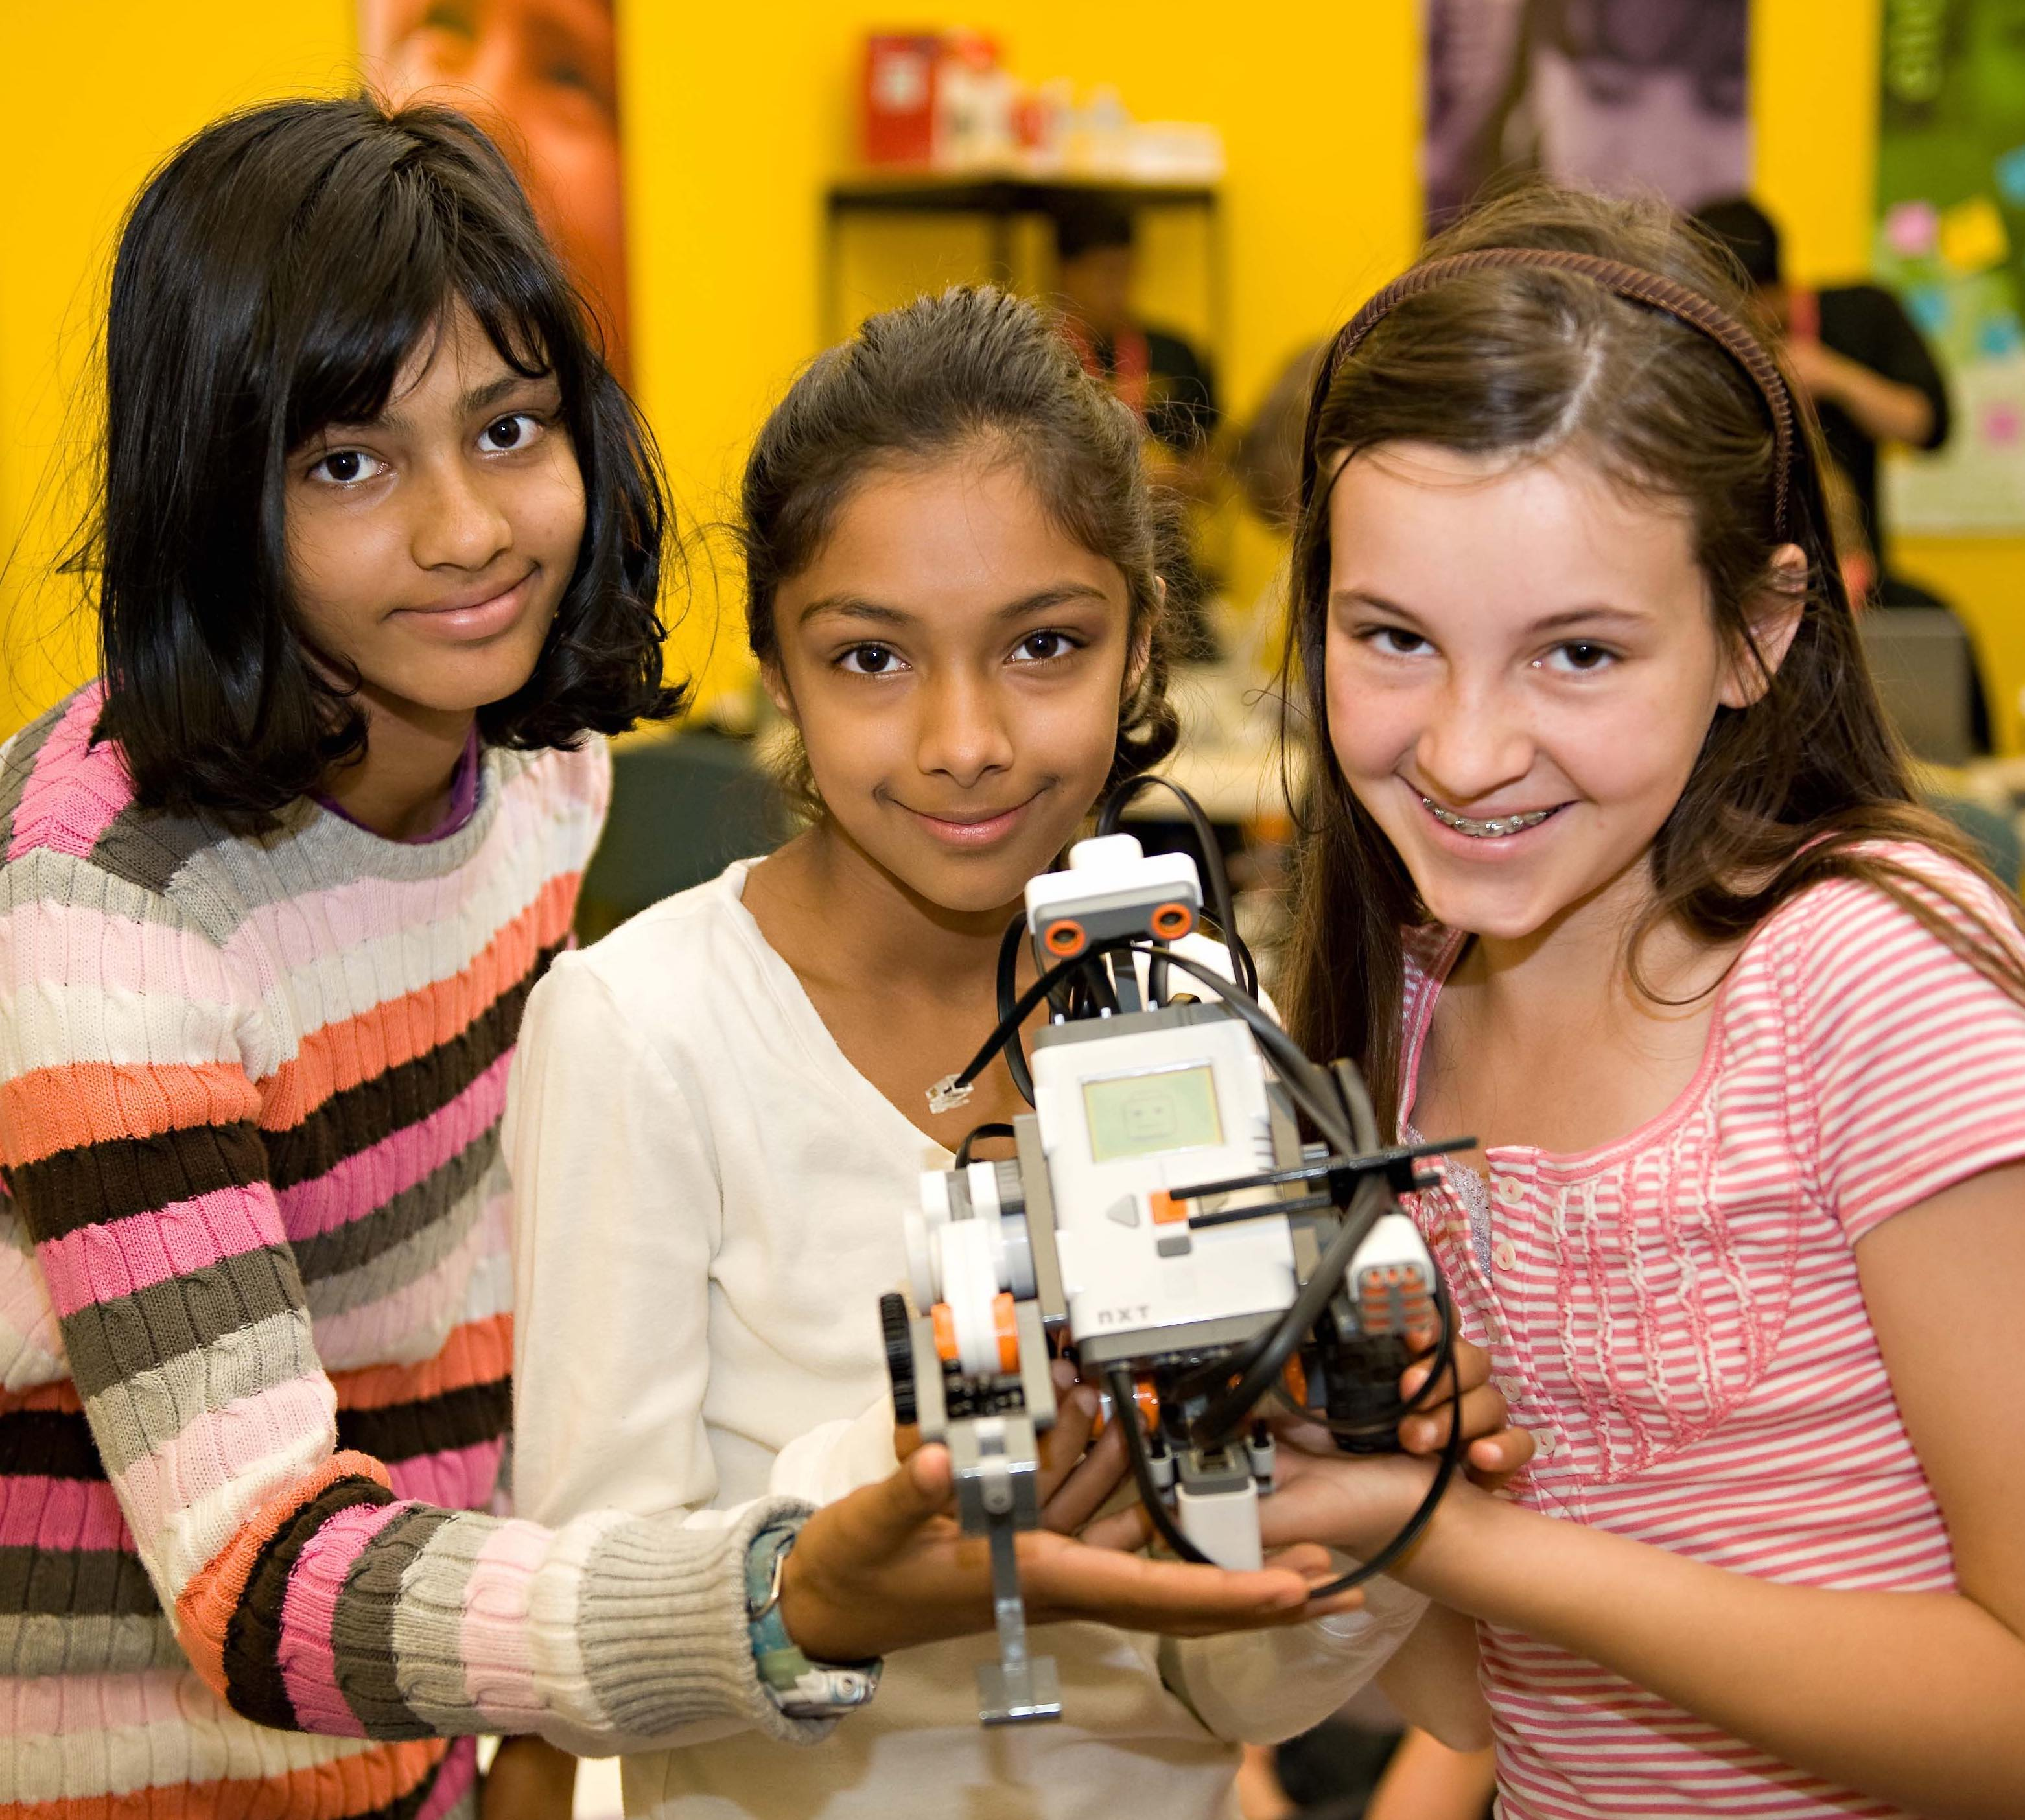 A group of young girl students share an engineering project.